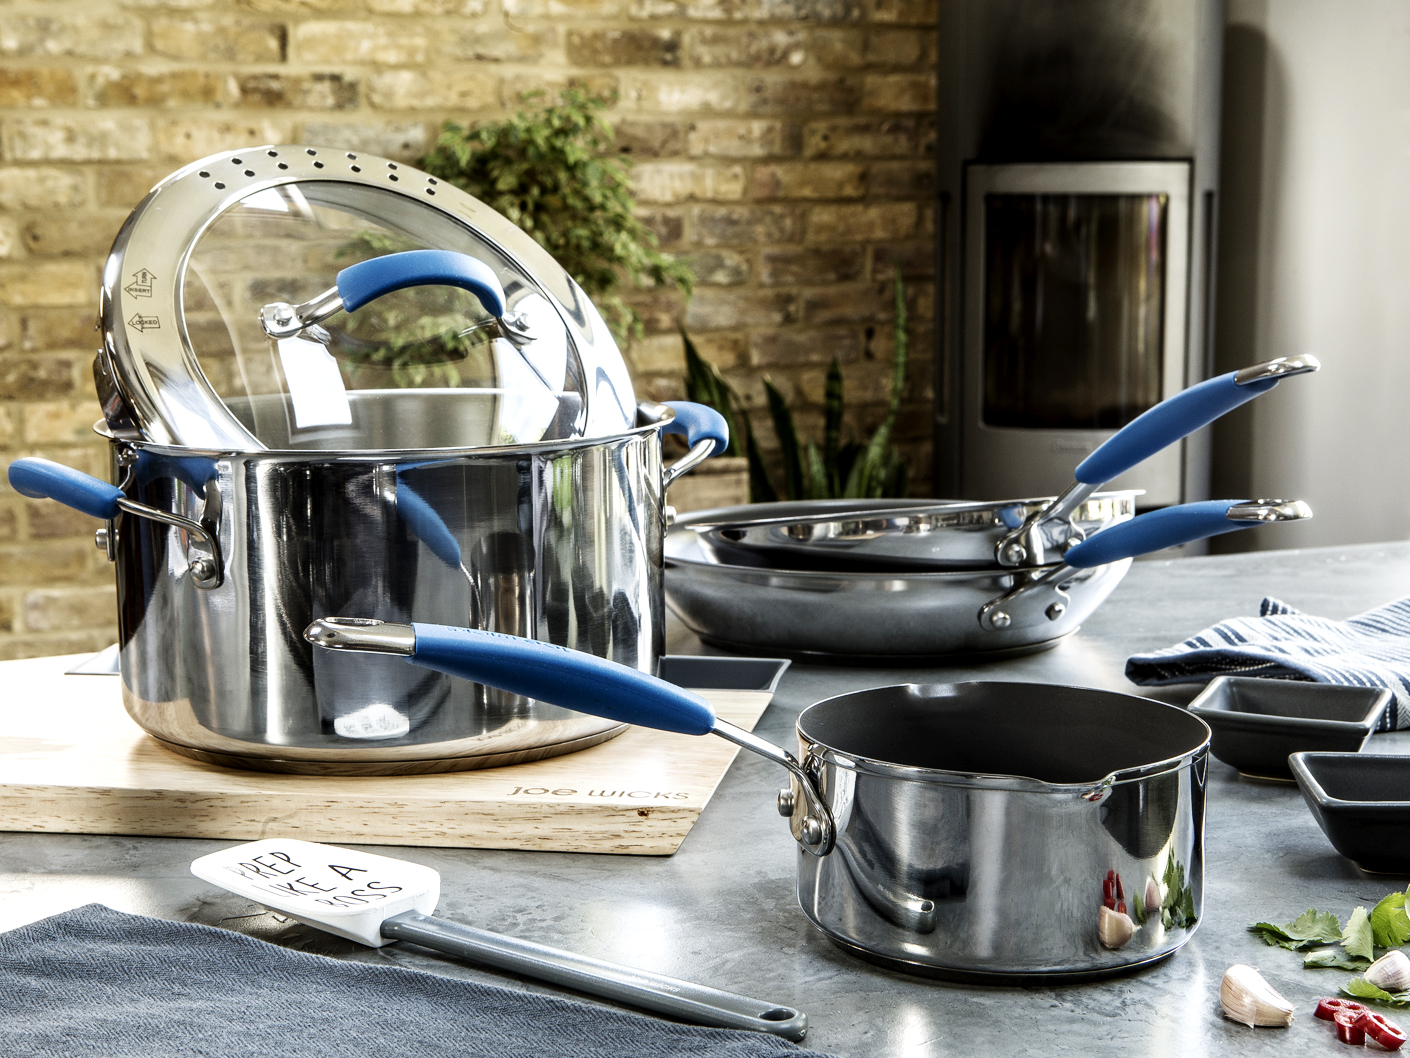 product-cookware-photography-for-joe-wicks-on-location-in-london